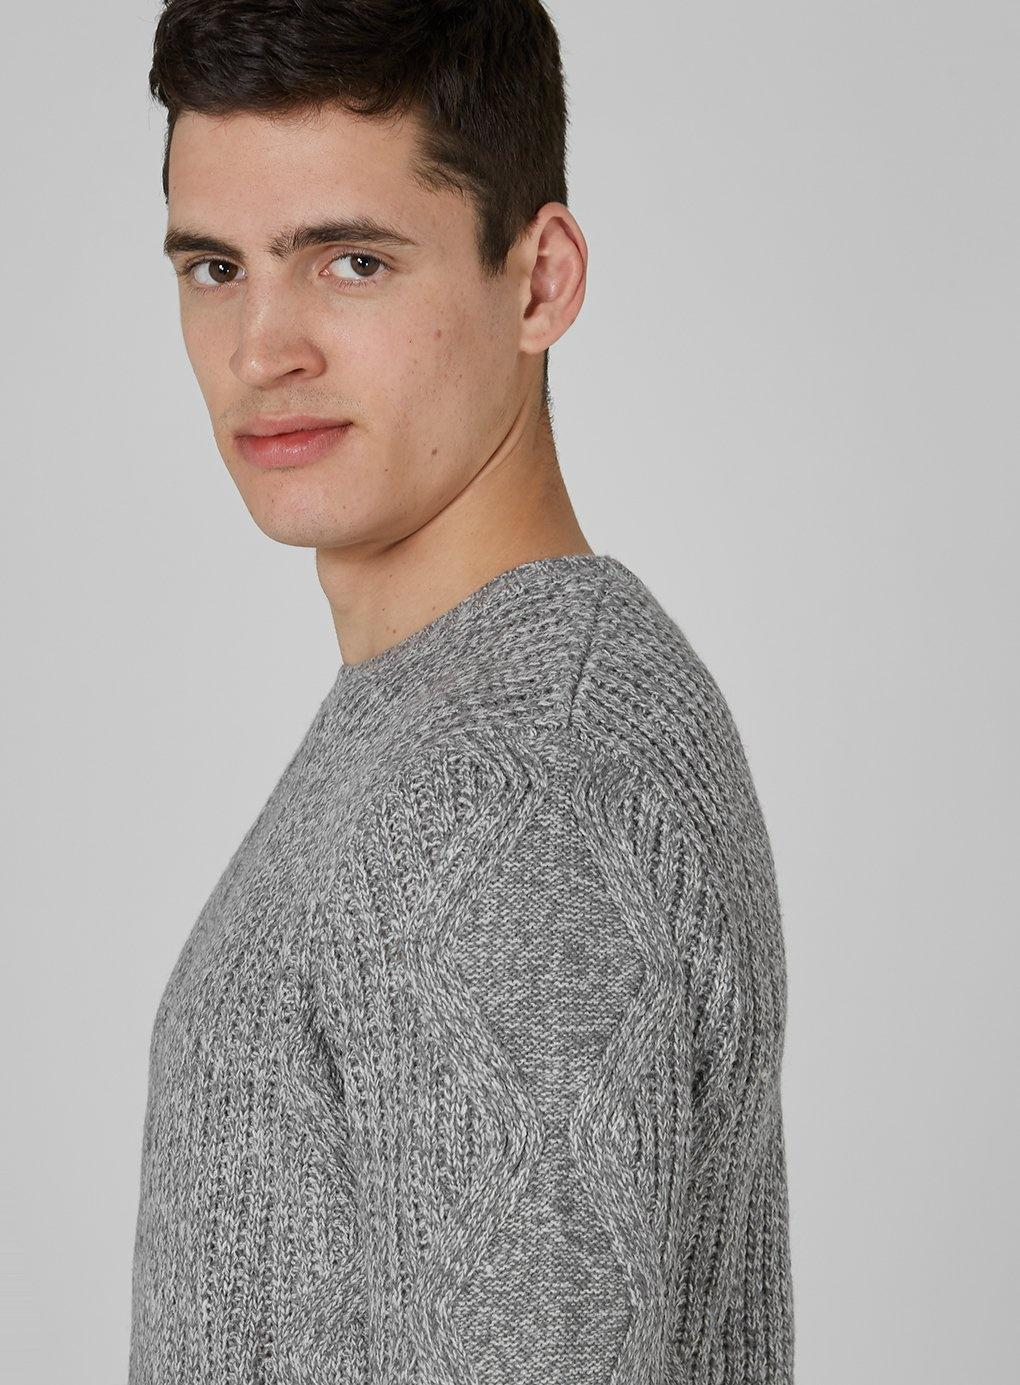 For Lyst Sweater Men White Gray Twist Knit Cable And In Topman Tztr7